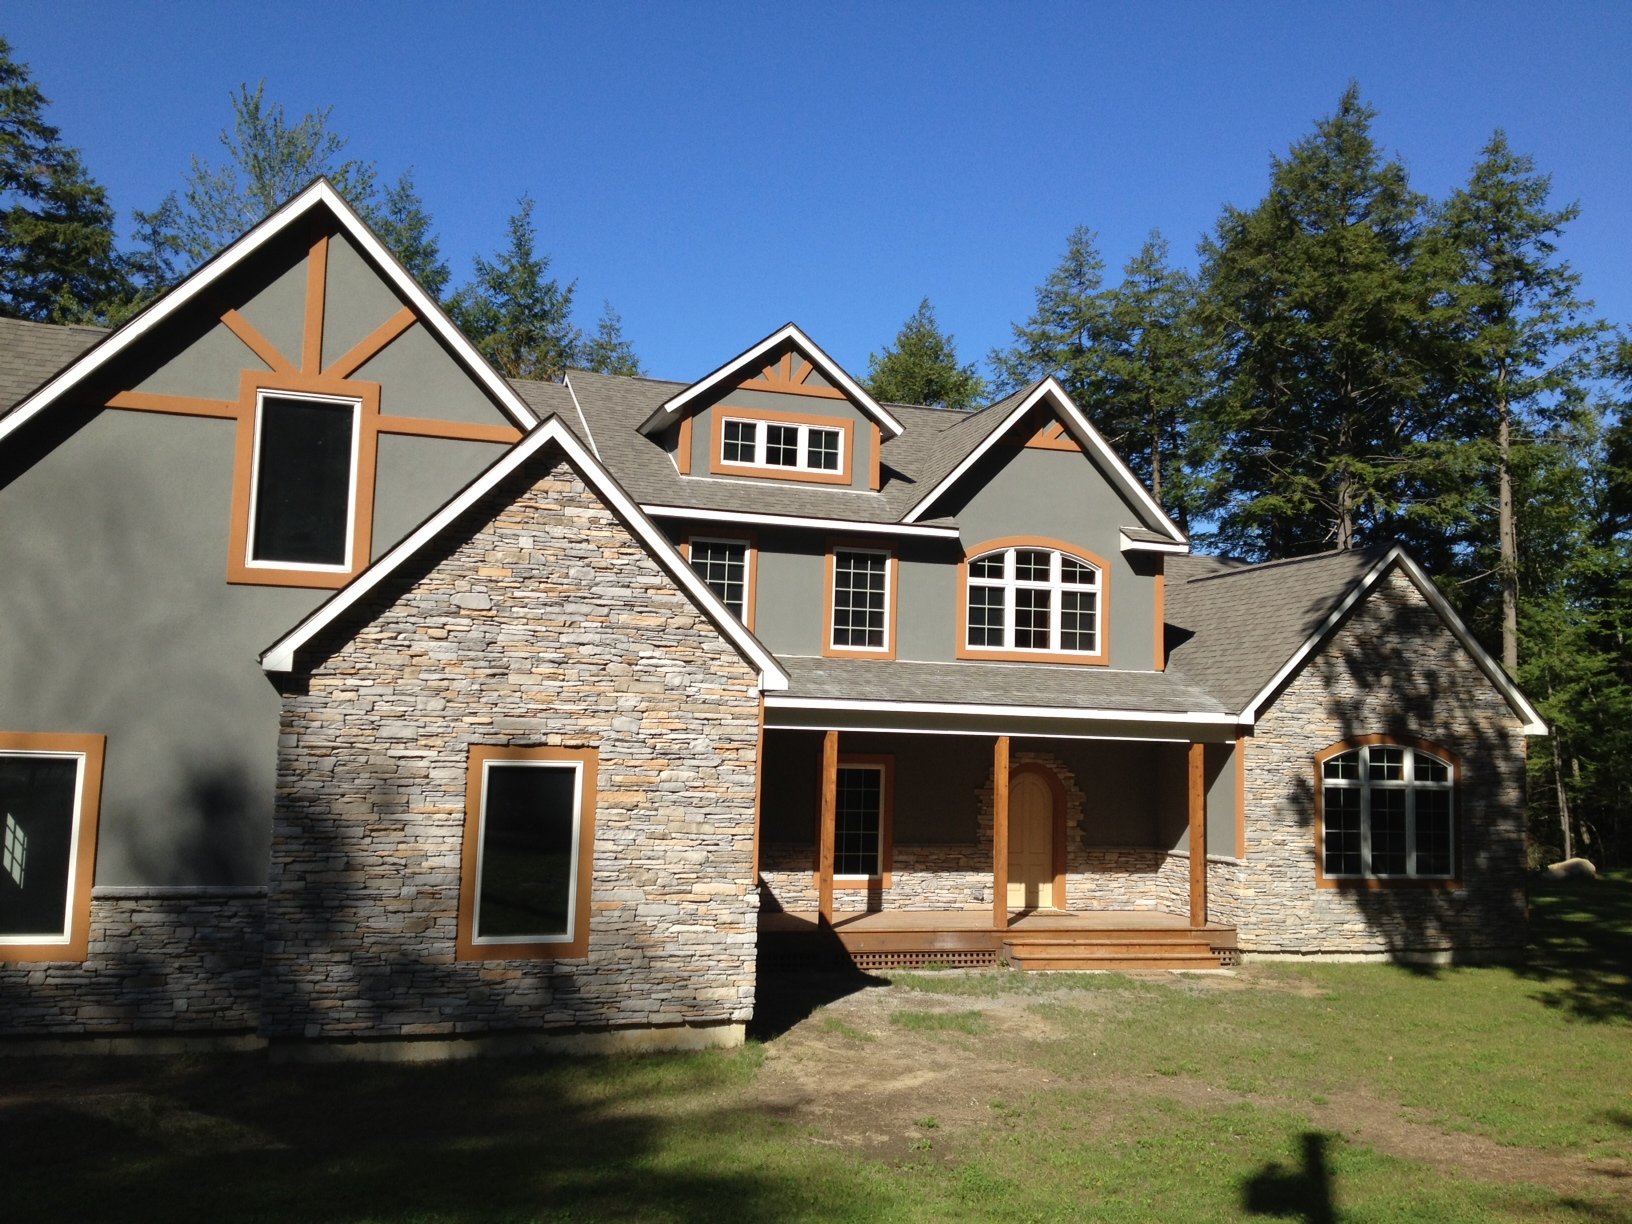 Custom modular homes saratoga construction llc House builders prices